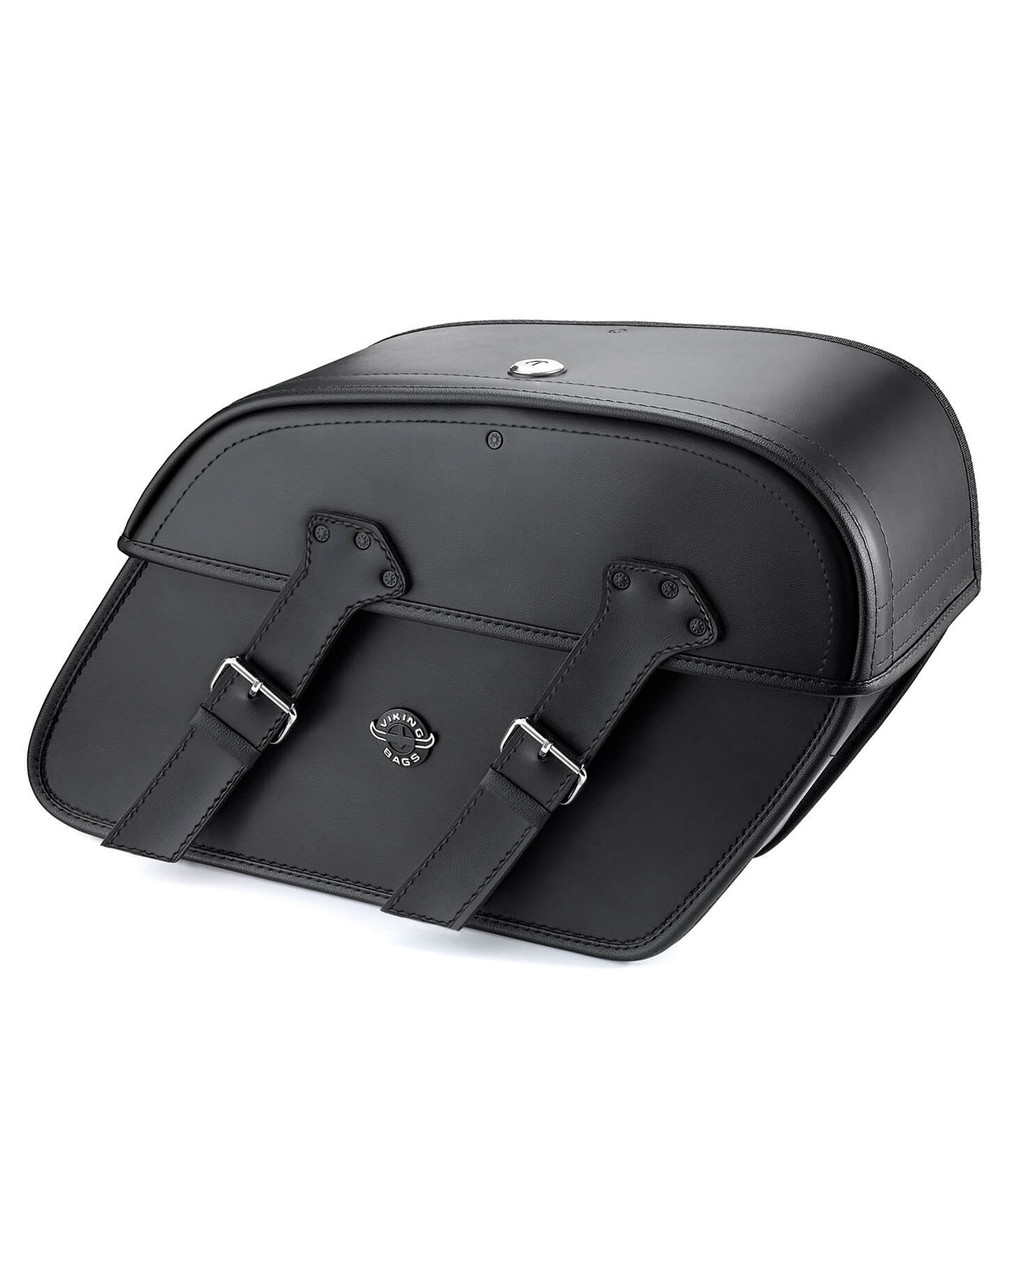 Viking Raven Large Leather Motorcycle Saddlebags For Harley Softail Springer FXSTS Main Bag View